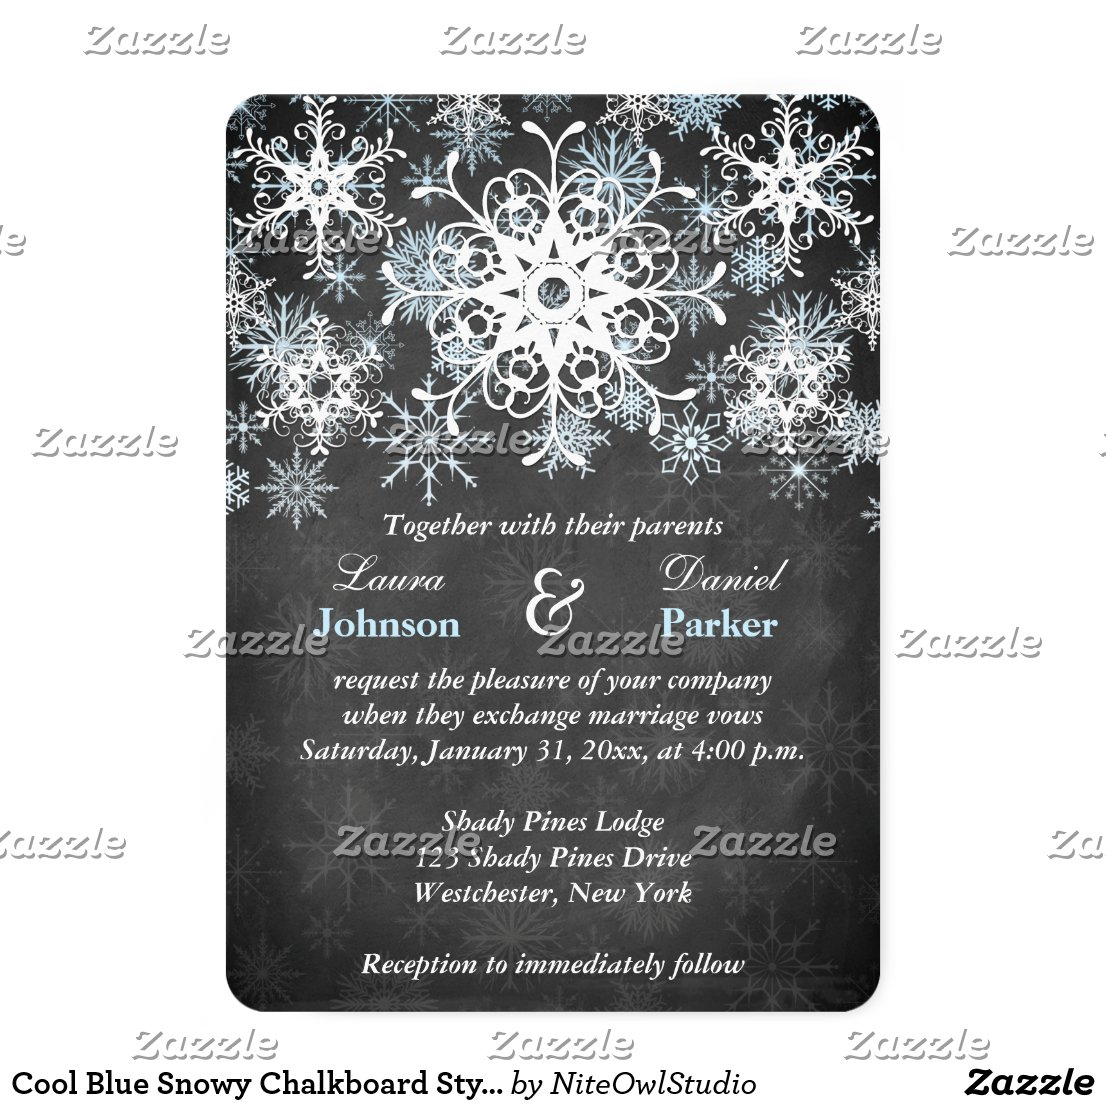 Cool Blue Snowy Chalkboard Style Wedding Invite